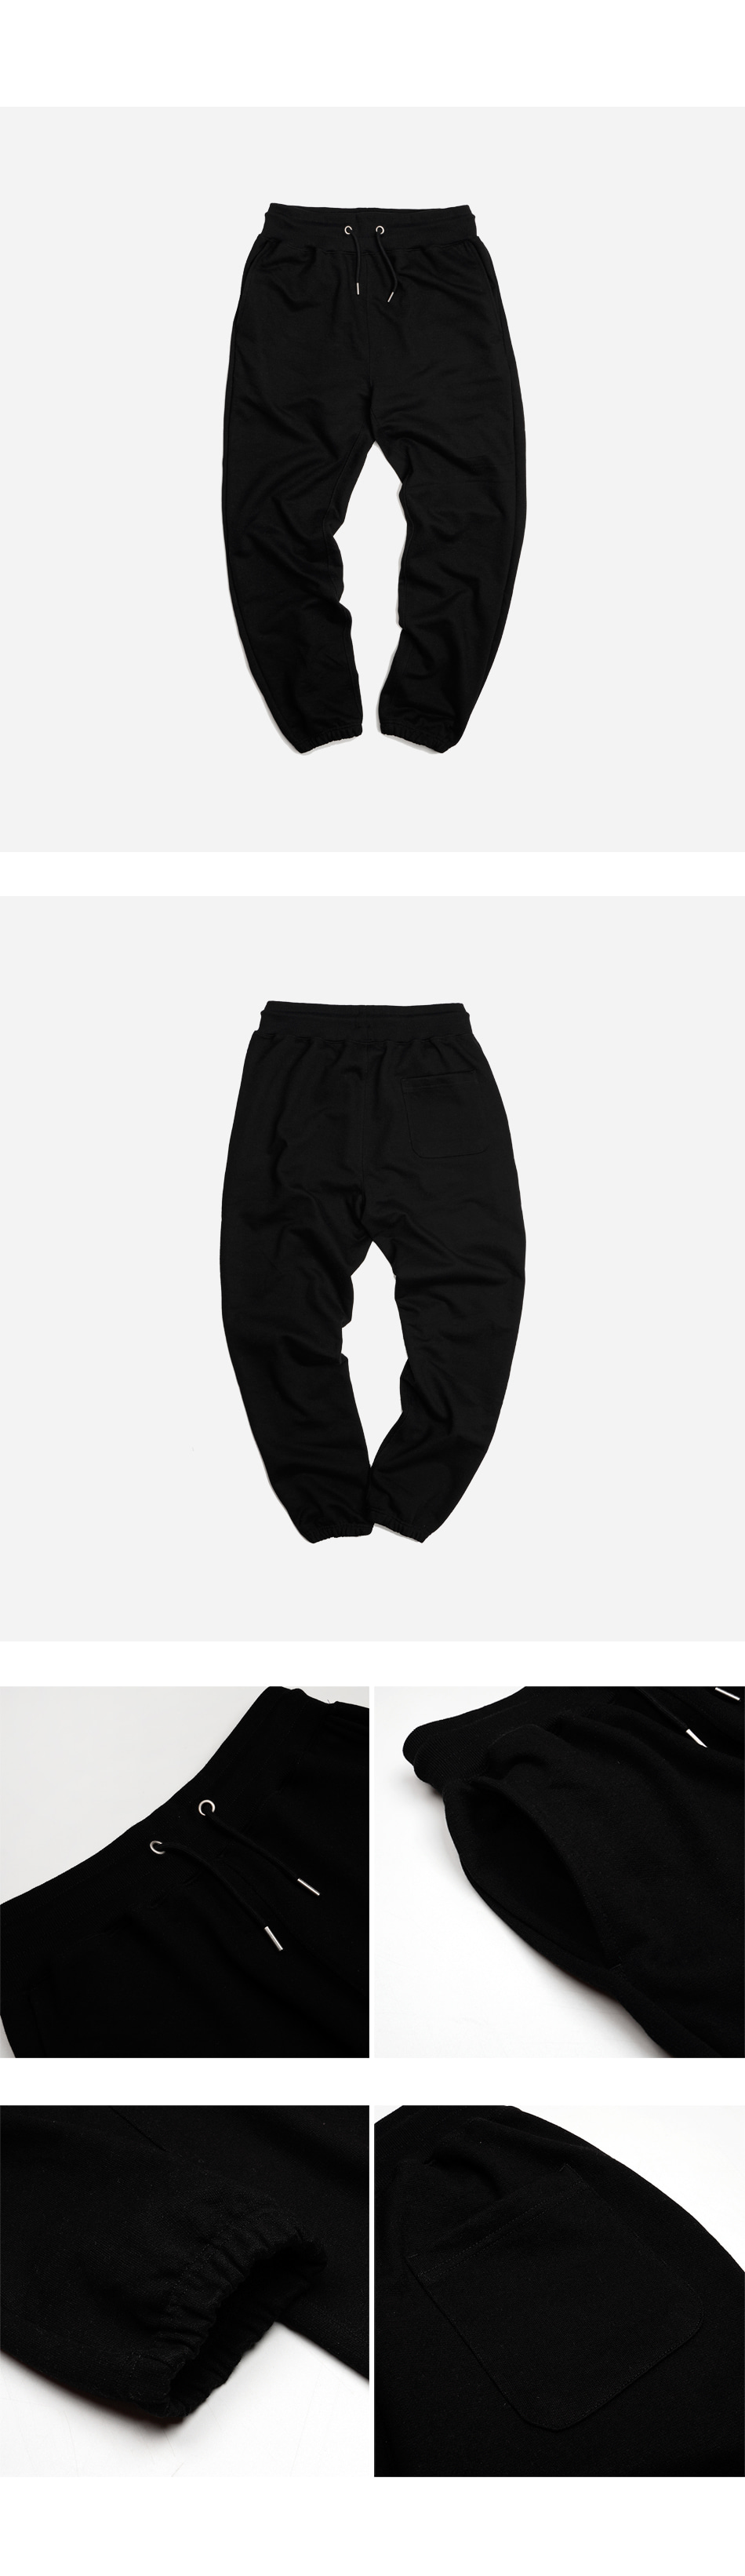 프리즘웍스(FRIZMWORKS) OG HEAVYWEIGHT SWEAT PANTS _ BLACK